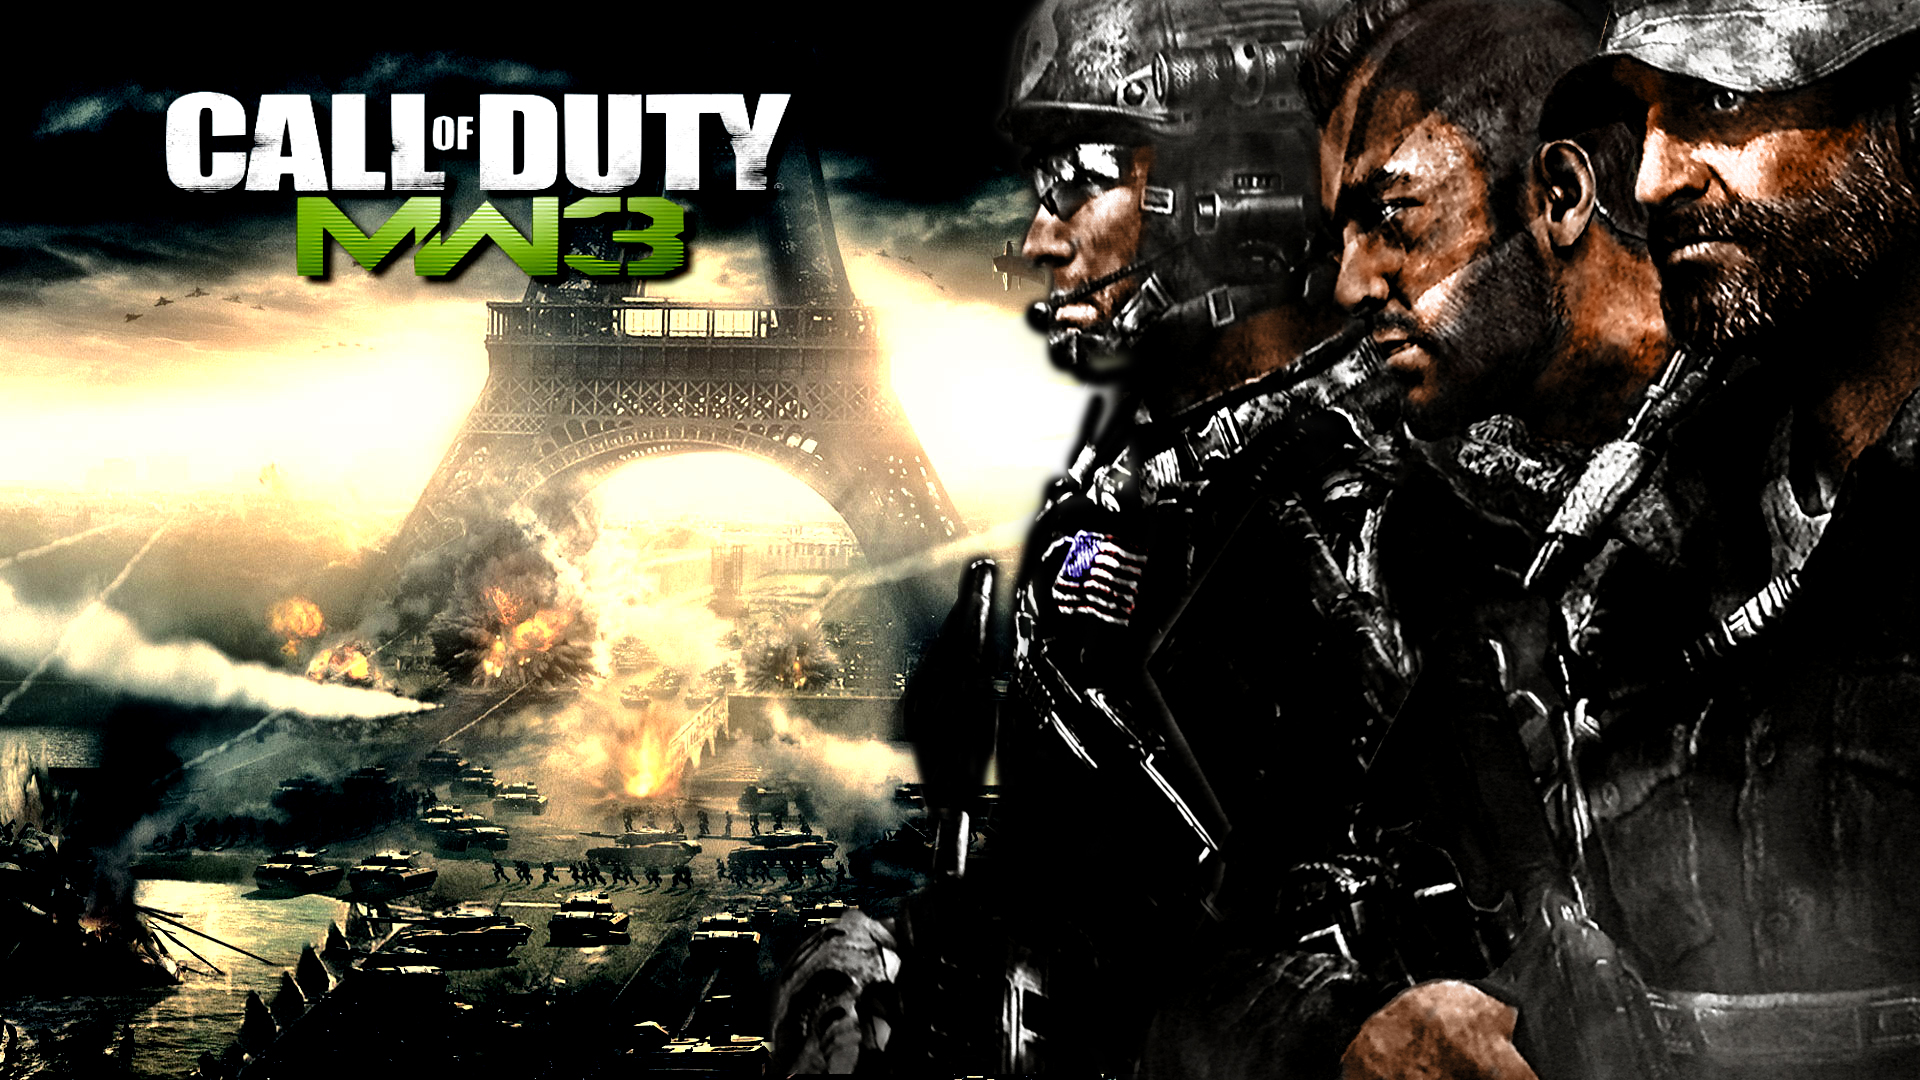 Modern Warfare 3 Wallpaper By VuLC4no